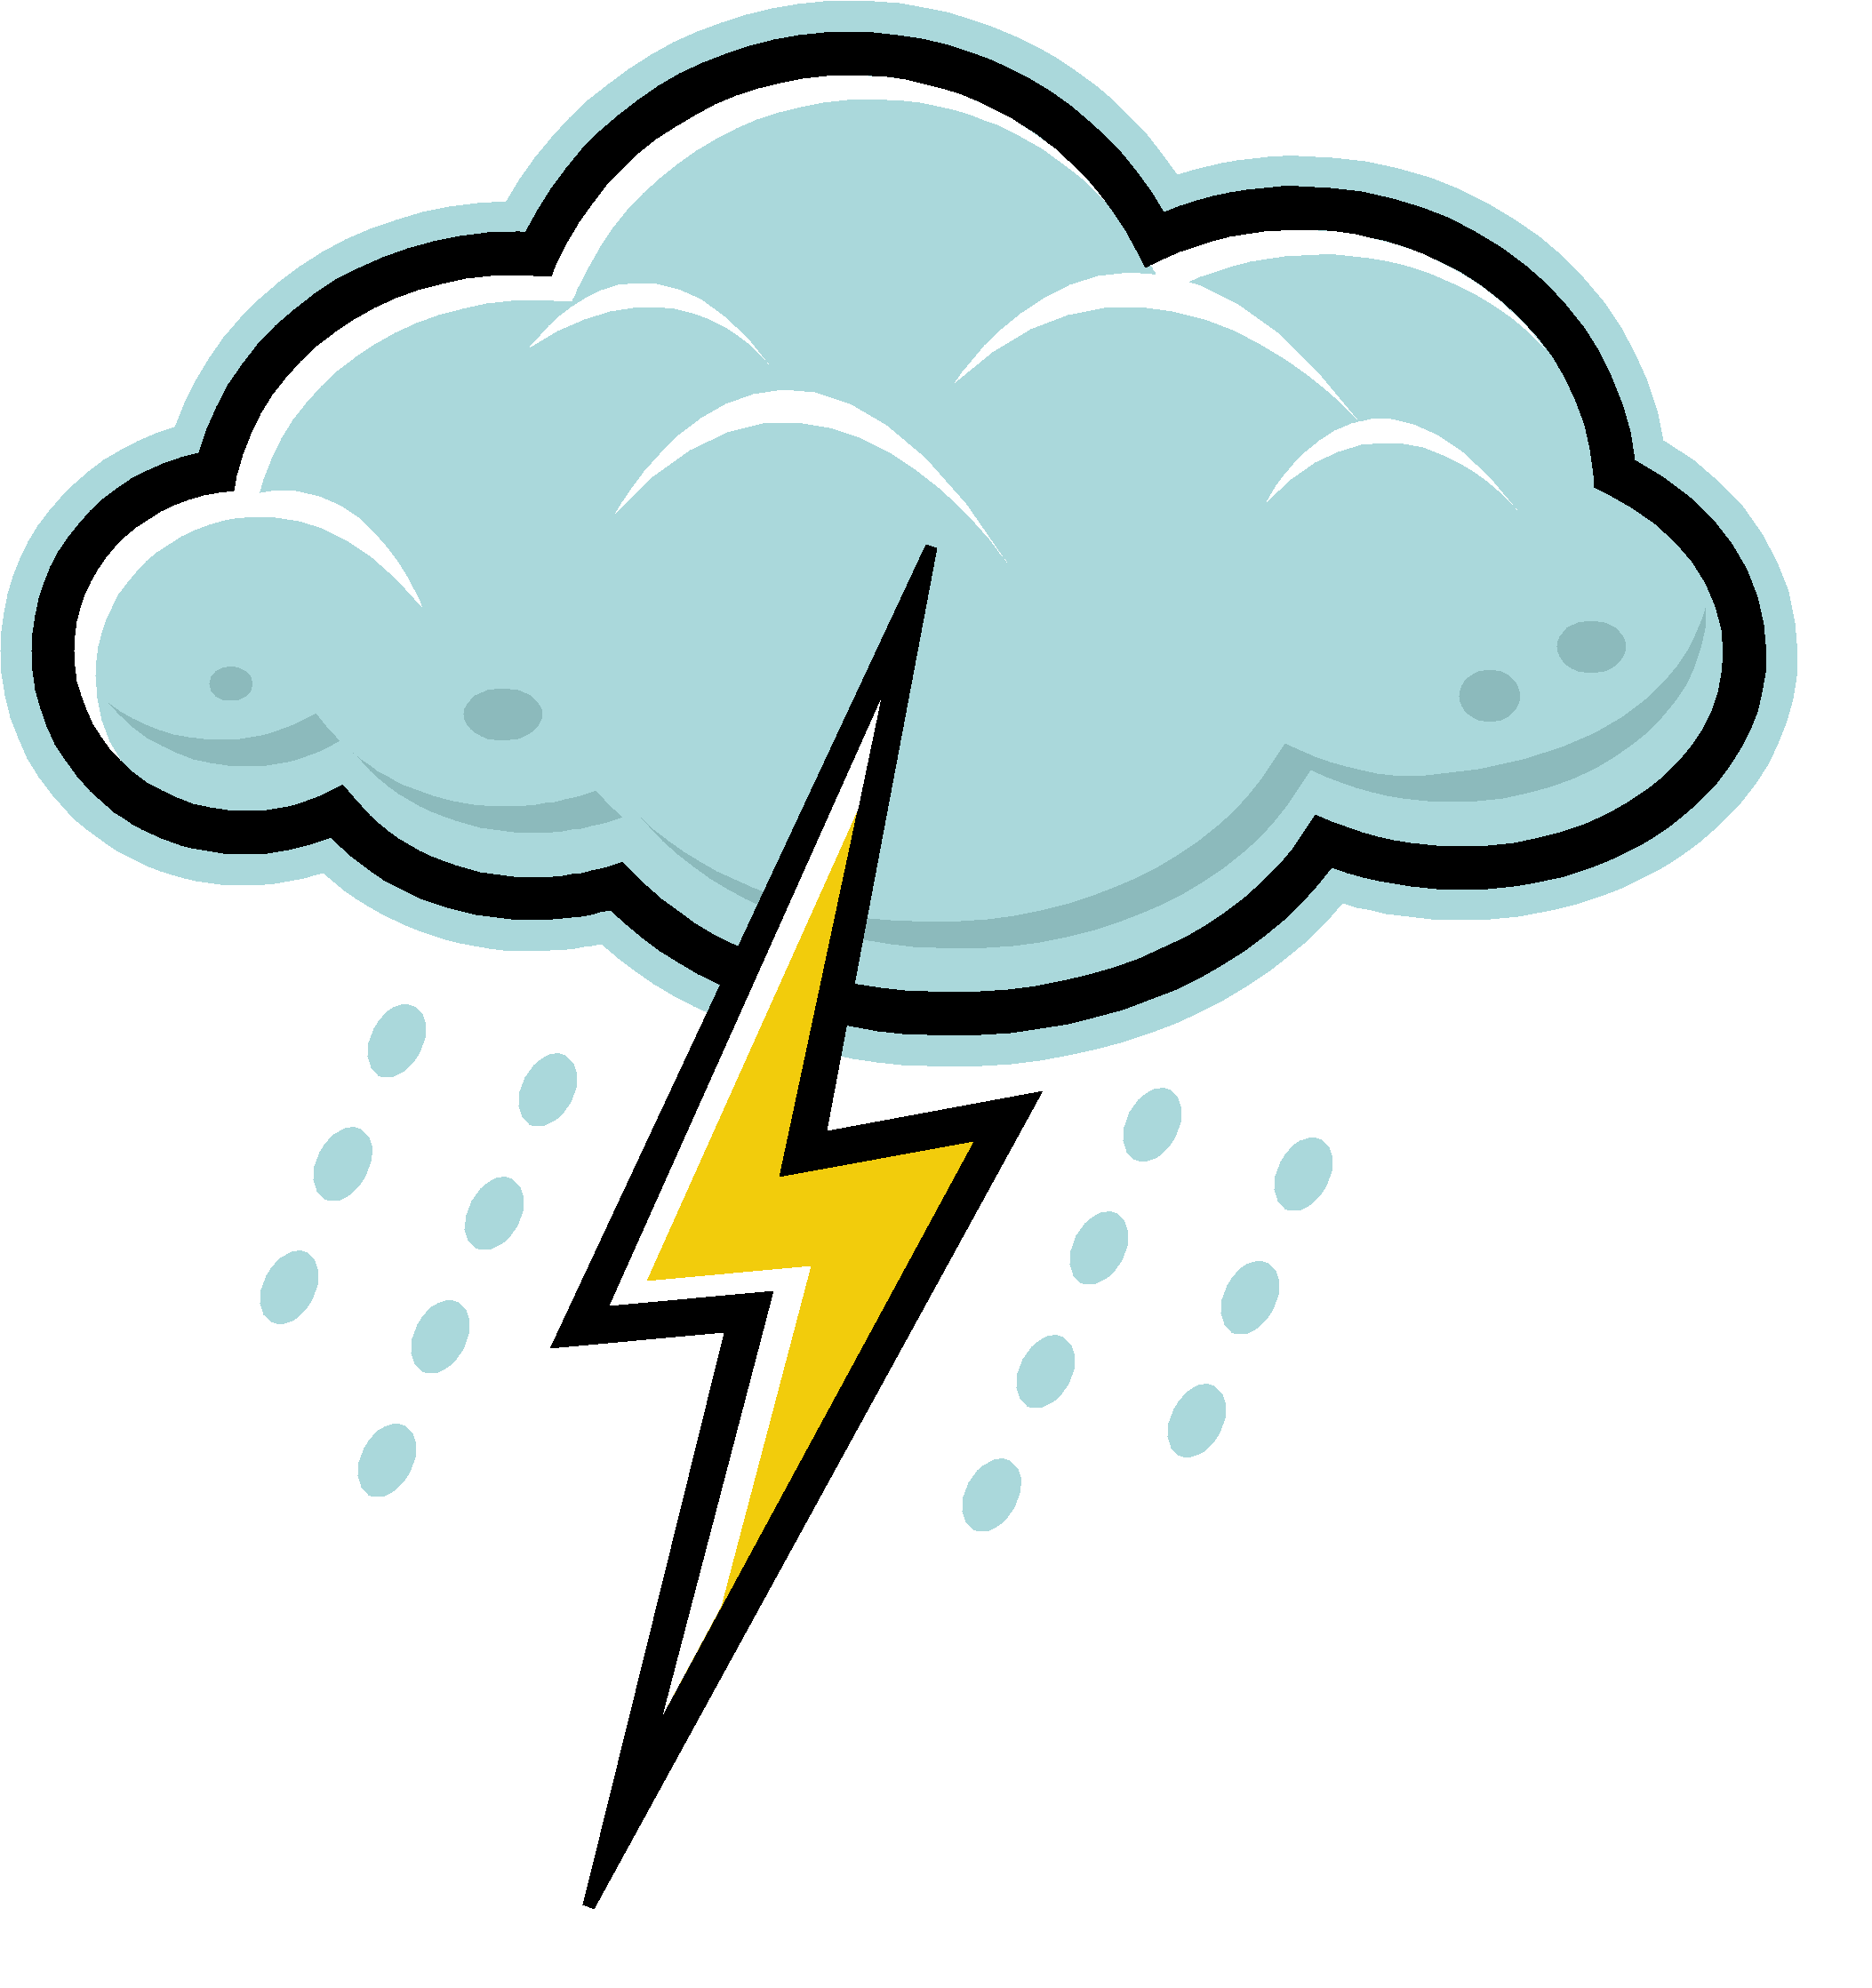 Thunderstorm clipart thunderstorm safety. Orientation pptx when the